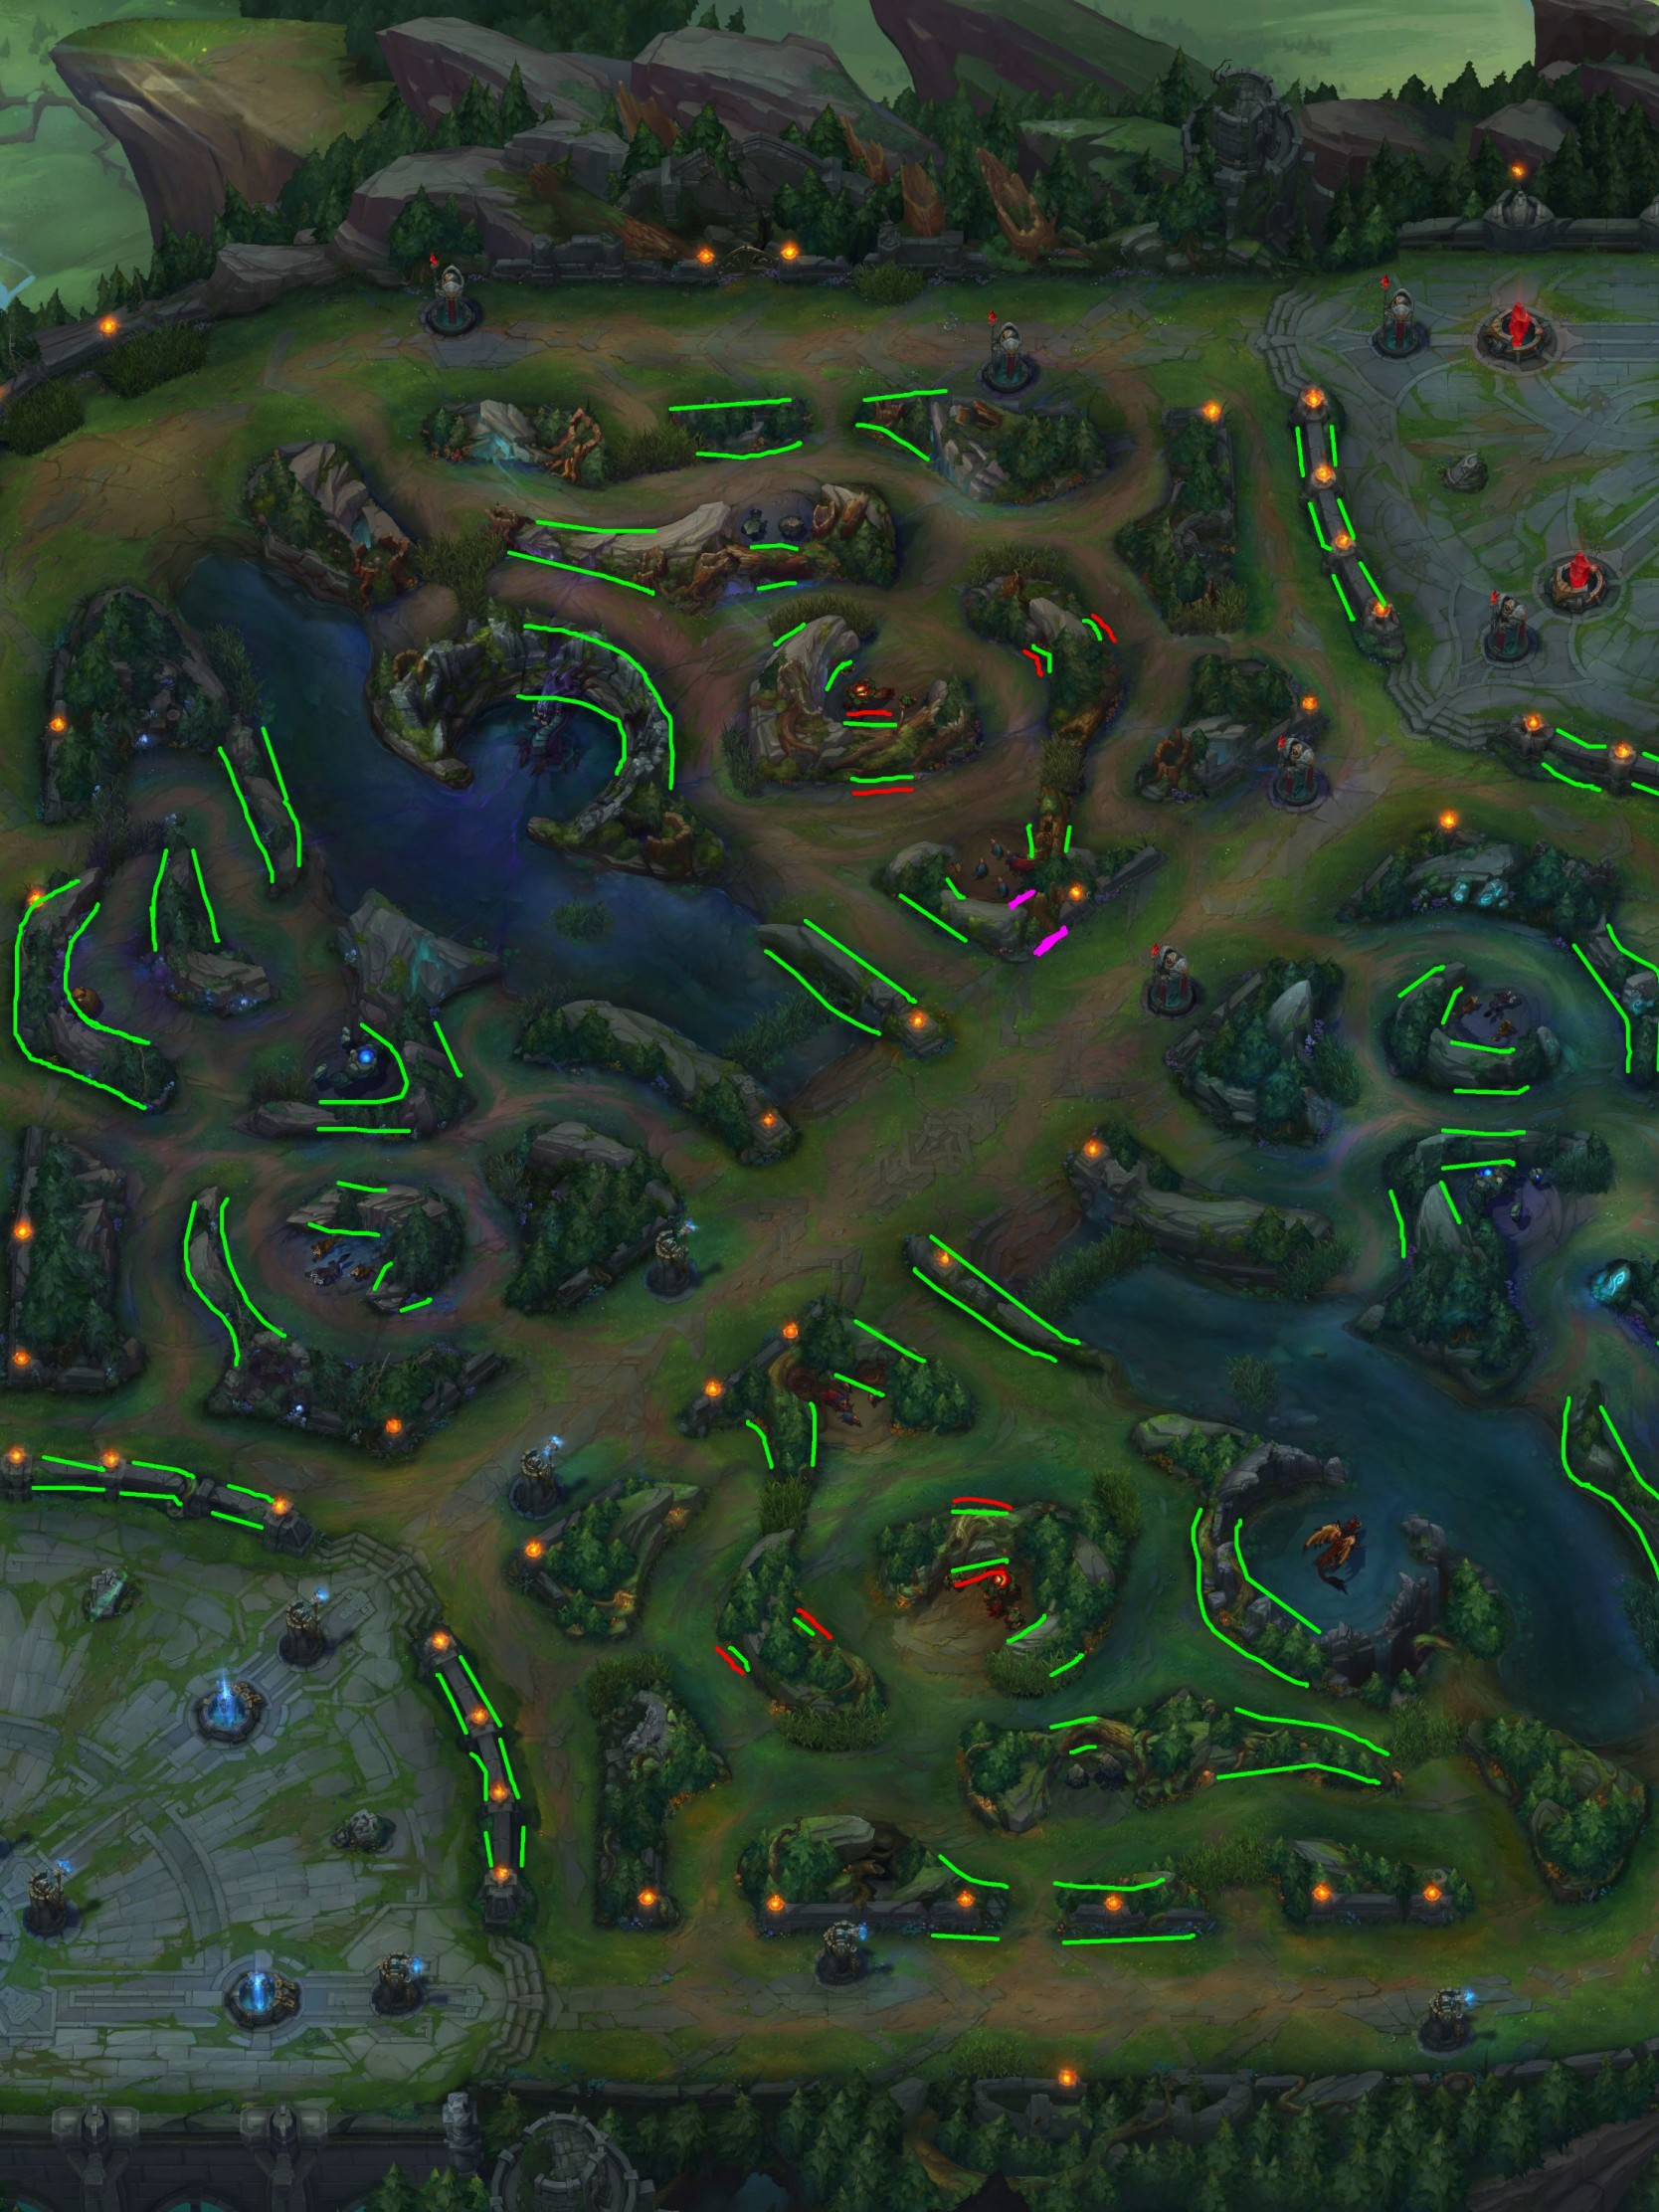 Download Wallpaper Jungle League Of Legends Map 1328514 Hd